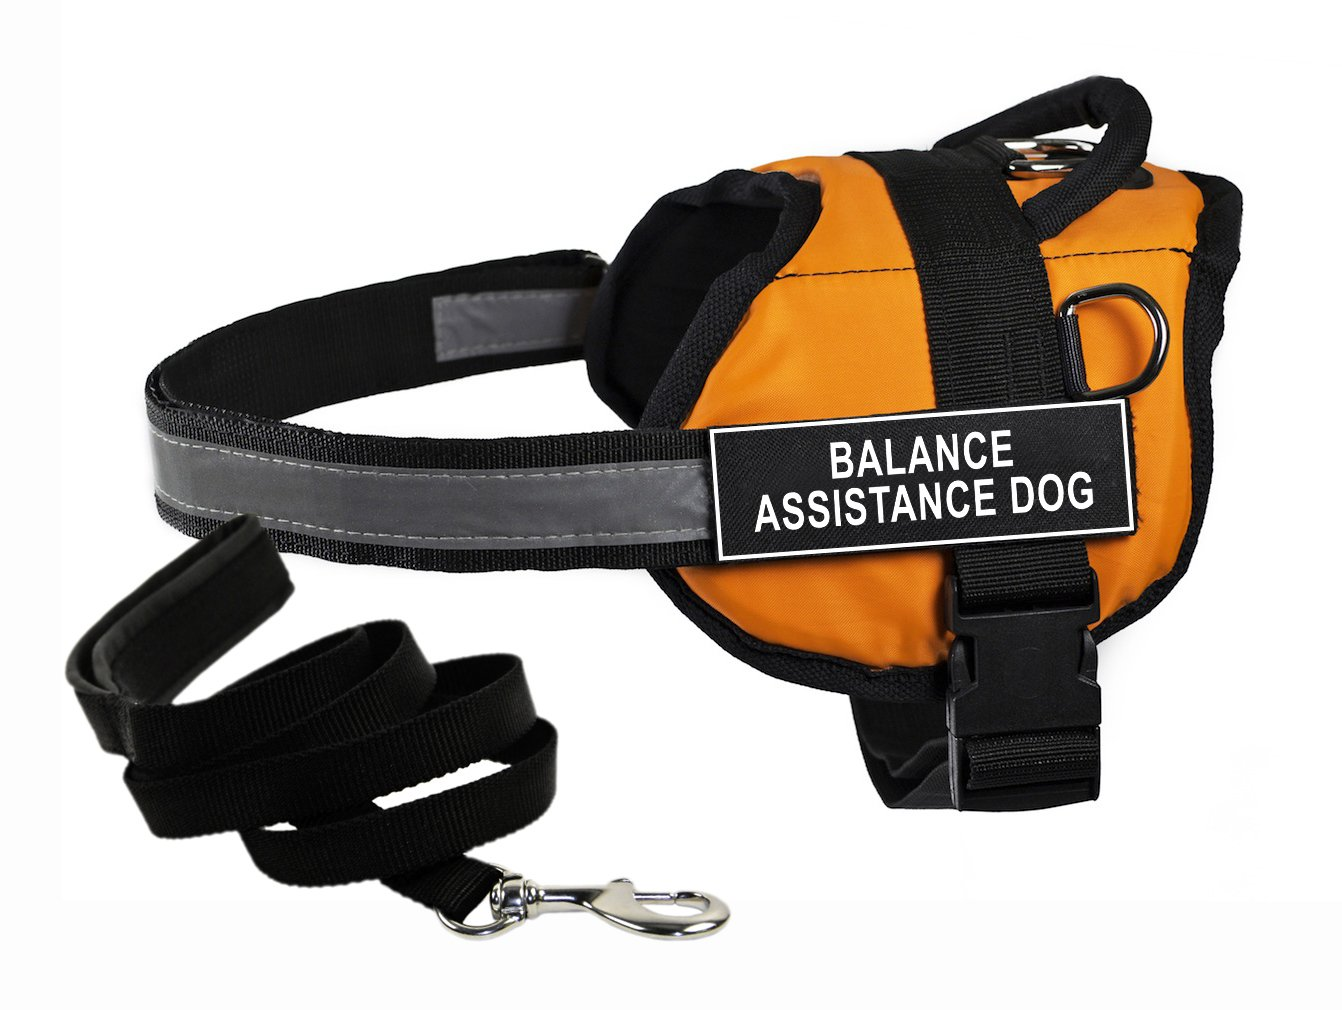 Dean & Tyler DT Works orange BALANCE ASSISTANCE DOG Harness with Chest Padding, Large, and Black 6 ft Padded Puppy Leash.